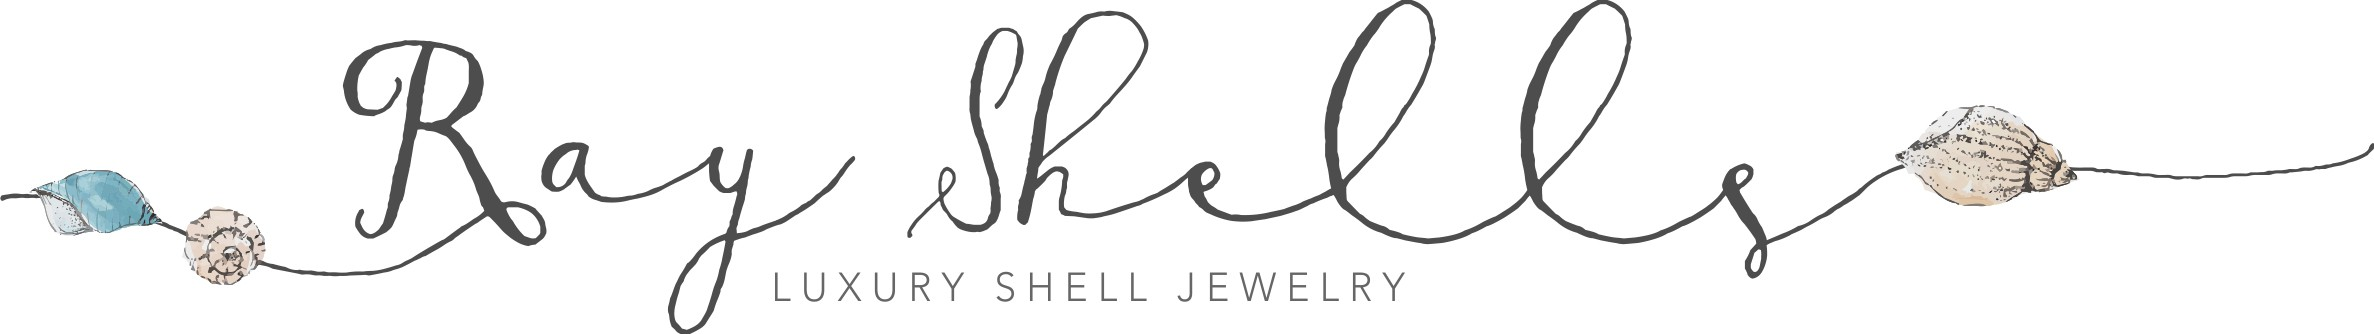 Classy and Fun Beach Logo for Shell Bracelet Company!